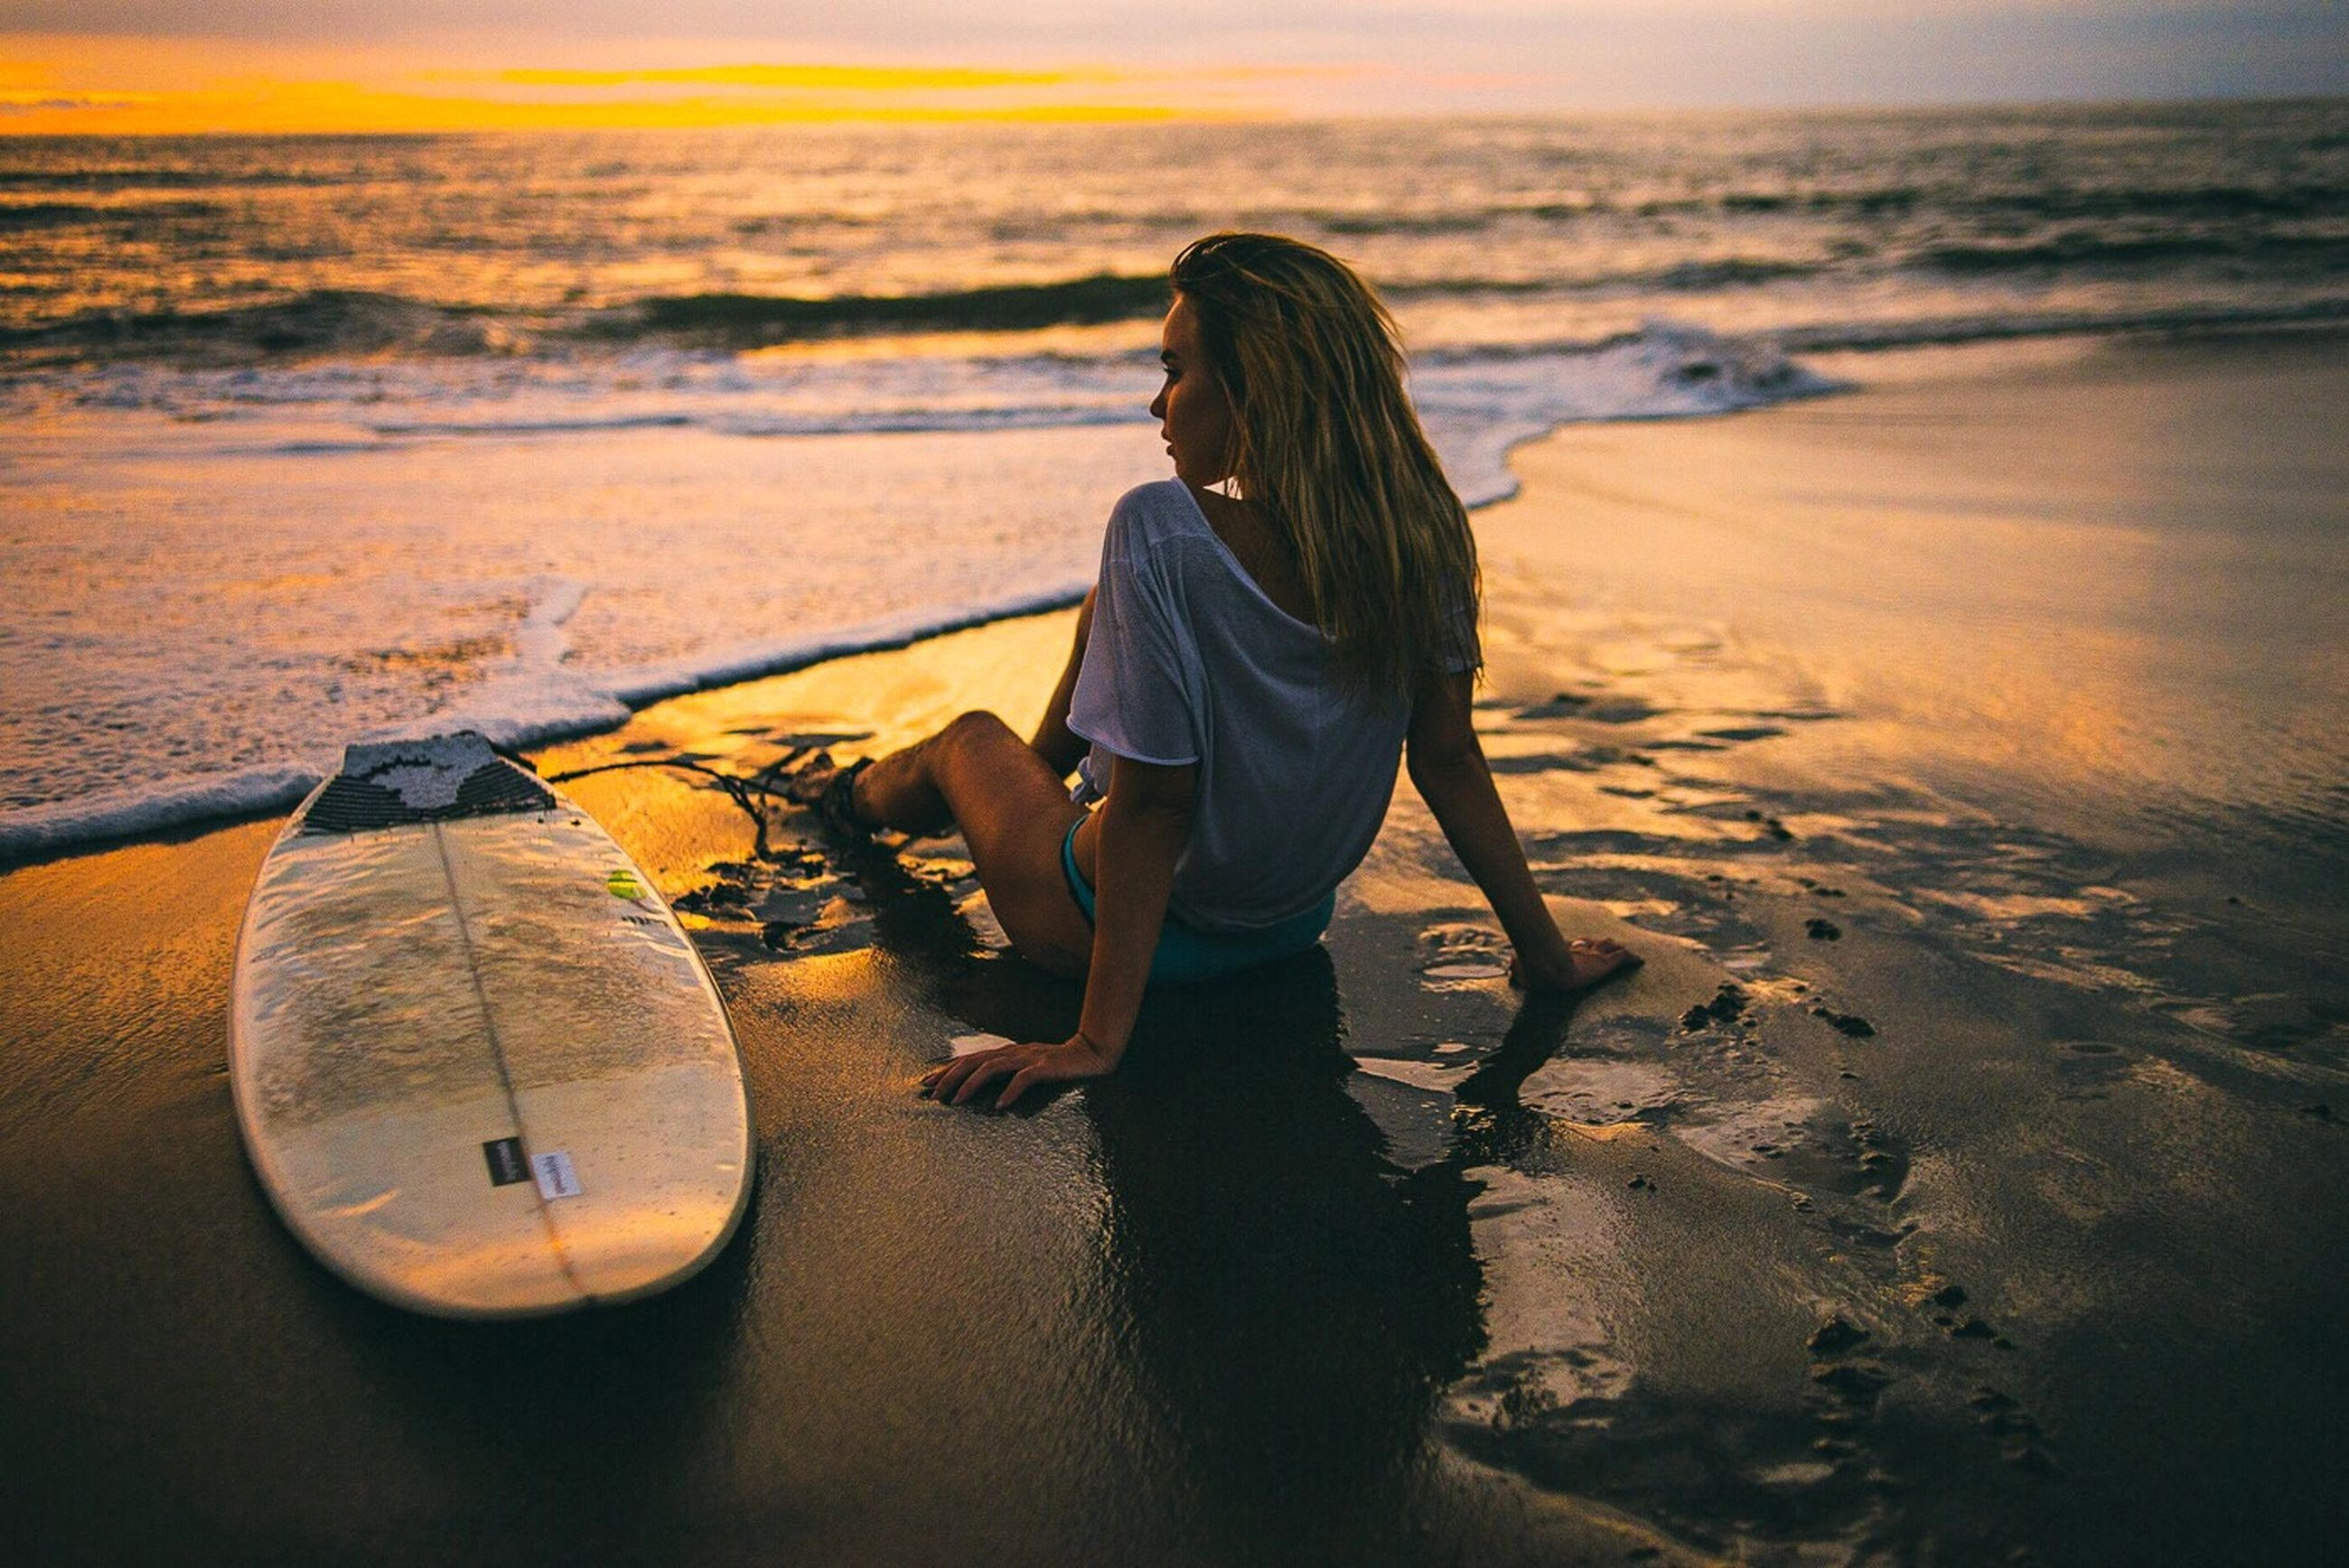 beach, sea, one person, full length, sunset, shore, water, real people, sand, lifestyles, nature, leisure activity, horizon over water, outdoors, women, scenics, standing, beauty in nature, young adult, sky, young women, day, adult, adults only, people